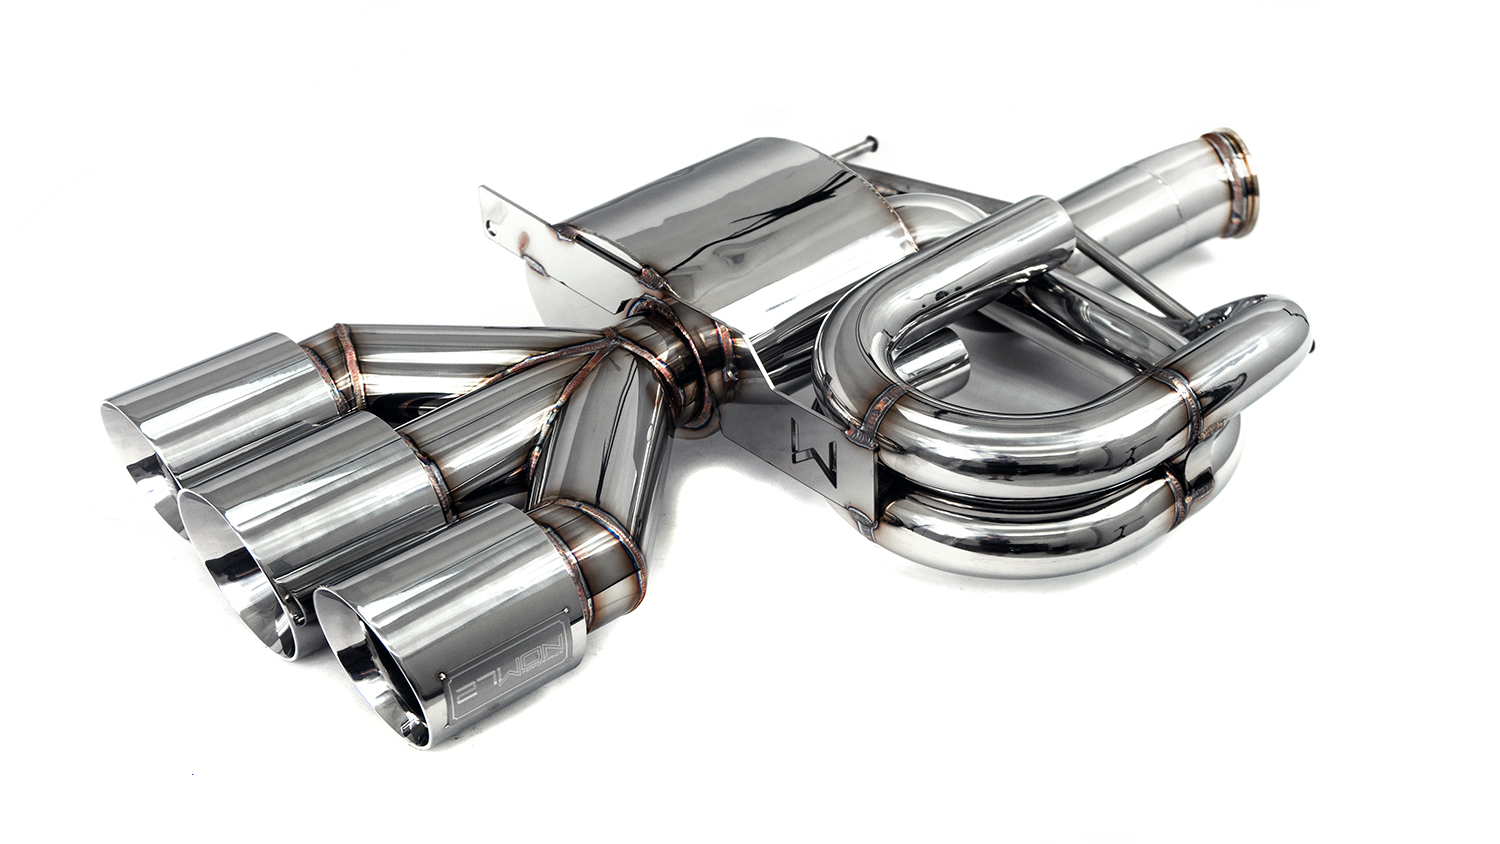 2017 civic type r cat back exhaust fk8